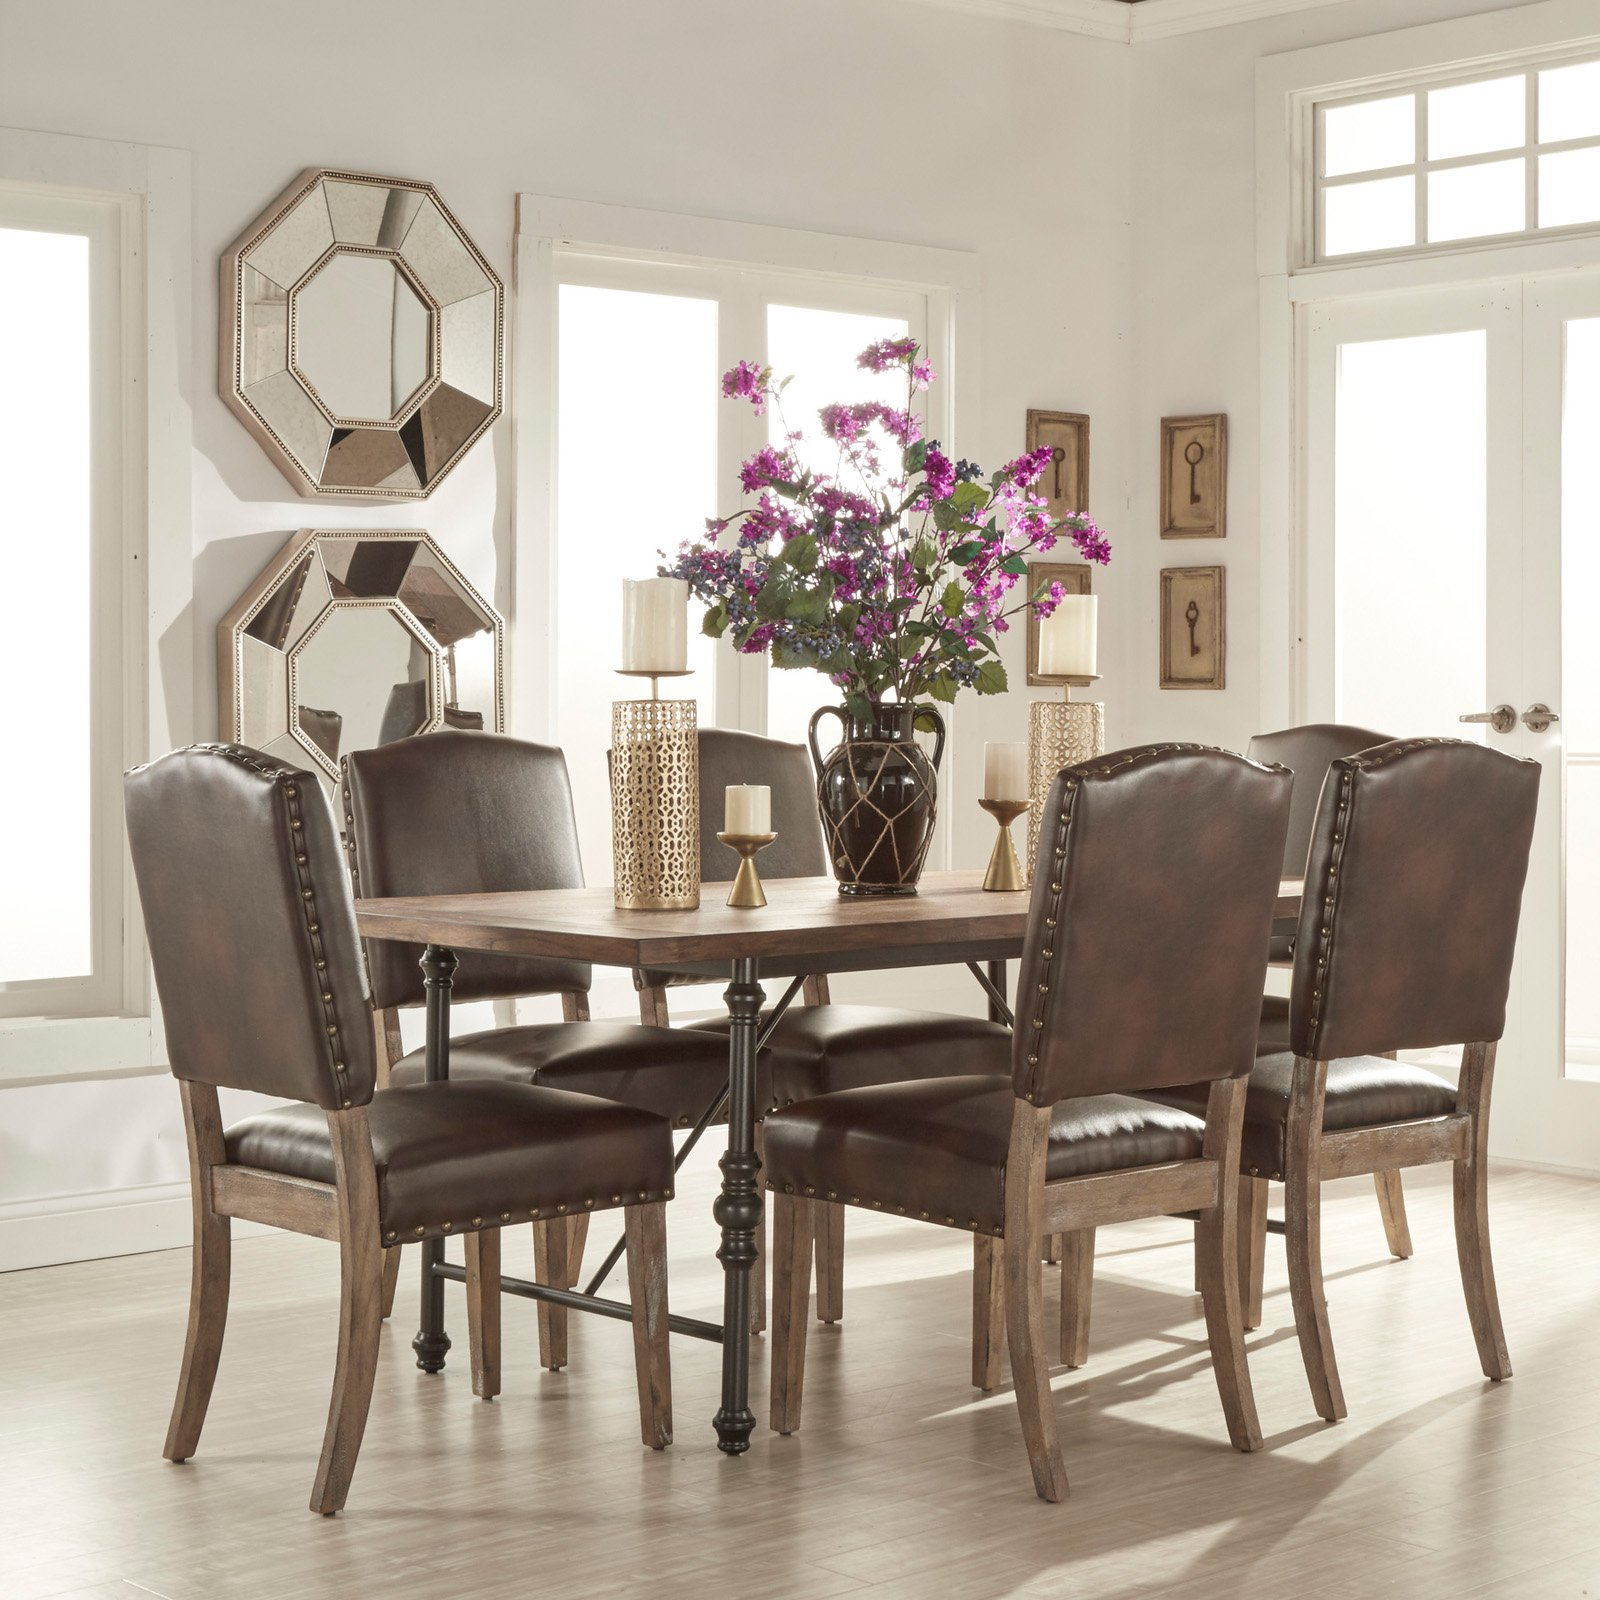 Weston Home 7 Piece Industrial Dining Set with Brown Chairs